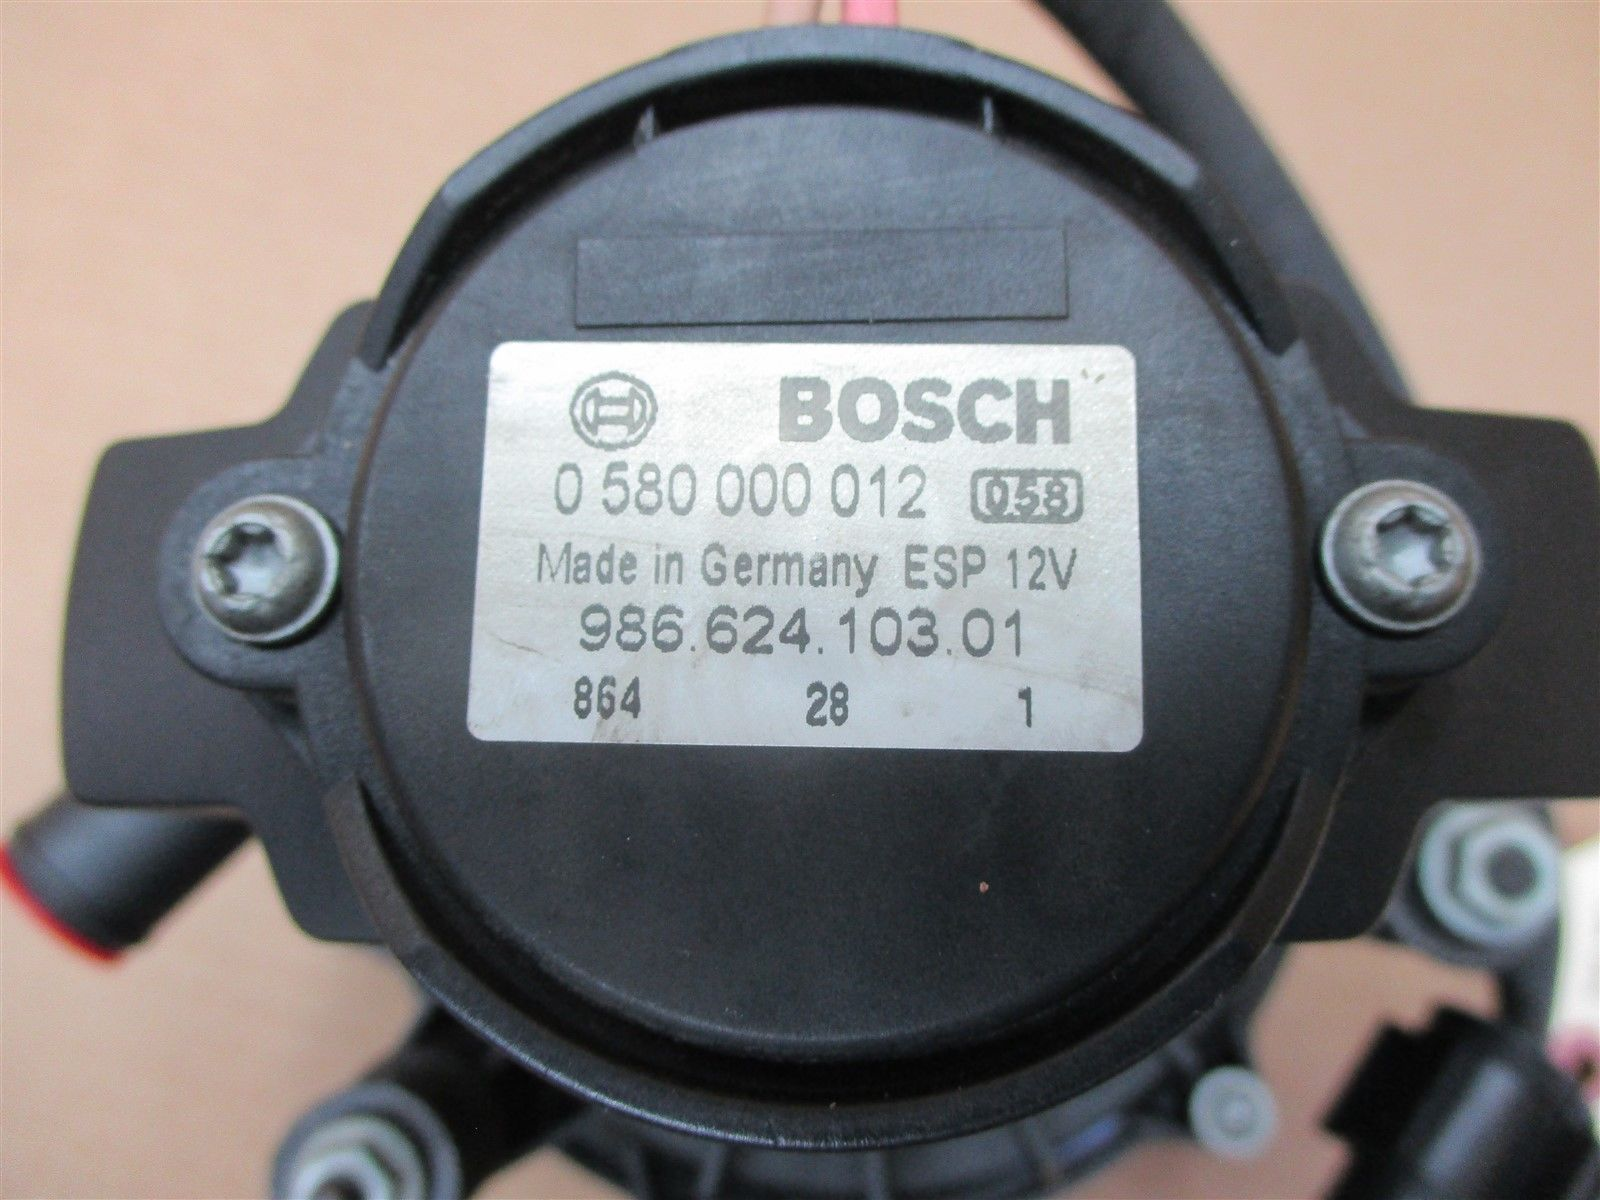 99 Boxster RWD Porsche 986 BOSCH COLD AIR INJECTION PUMP 98662410301 53,269